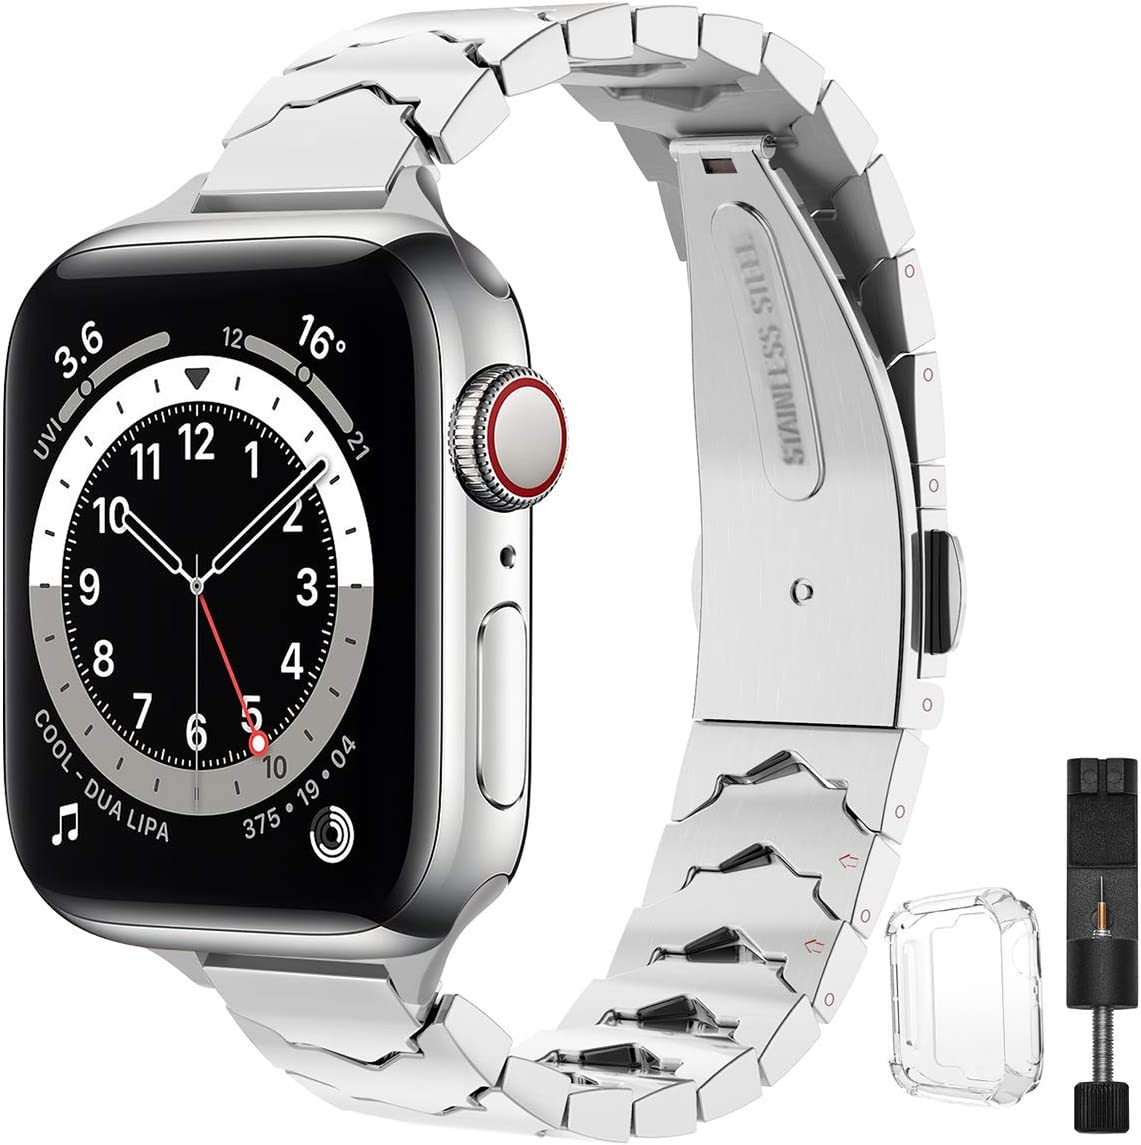 STIROLL Slim Stainless Steel Replacement Band Compatible for Apple Watch 38mm 40mm 42mm 44mm, Crown Shape Wristband Women for iWatch SE Series 6/5/4/3/2/1 (Silver, 38mm 40mm)